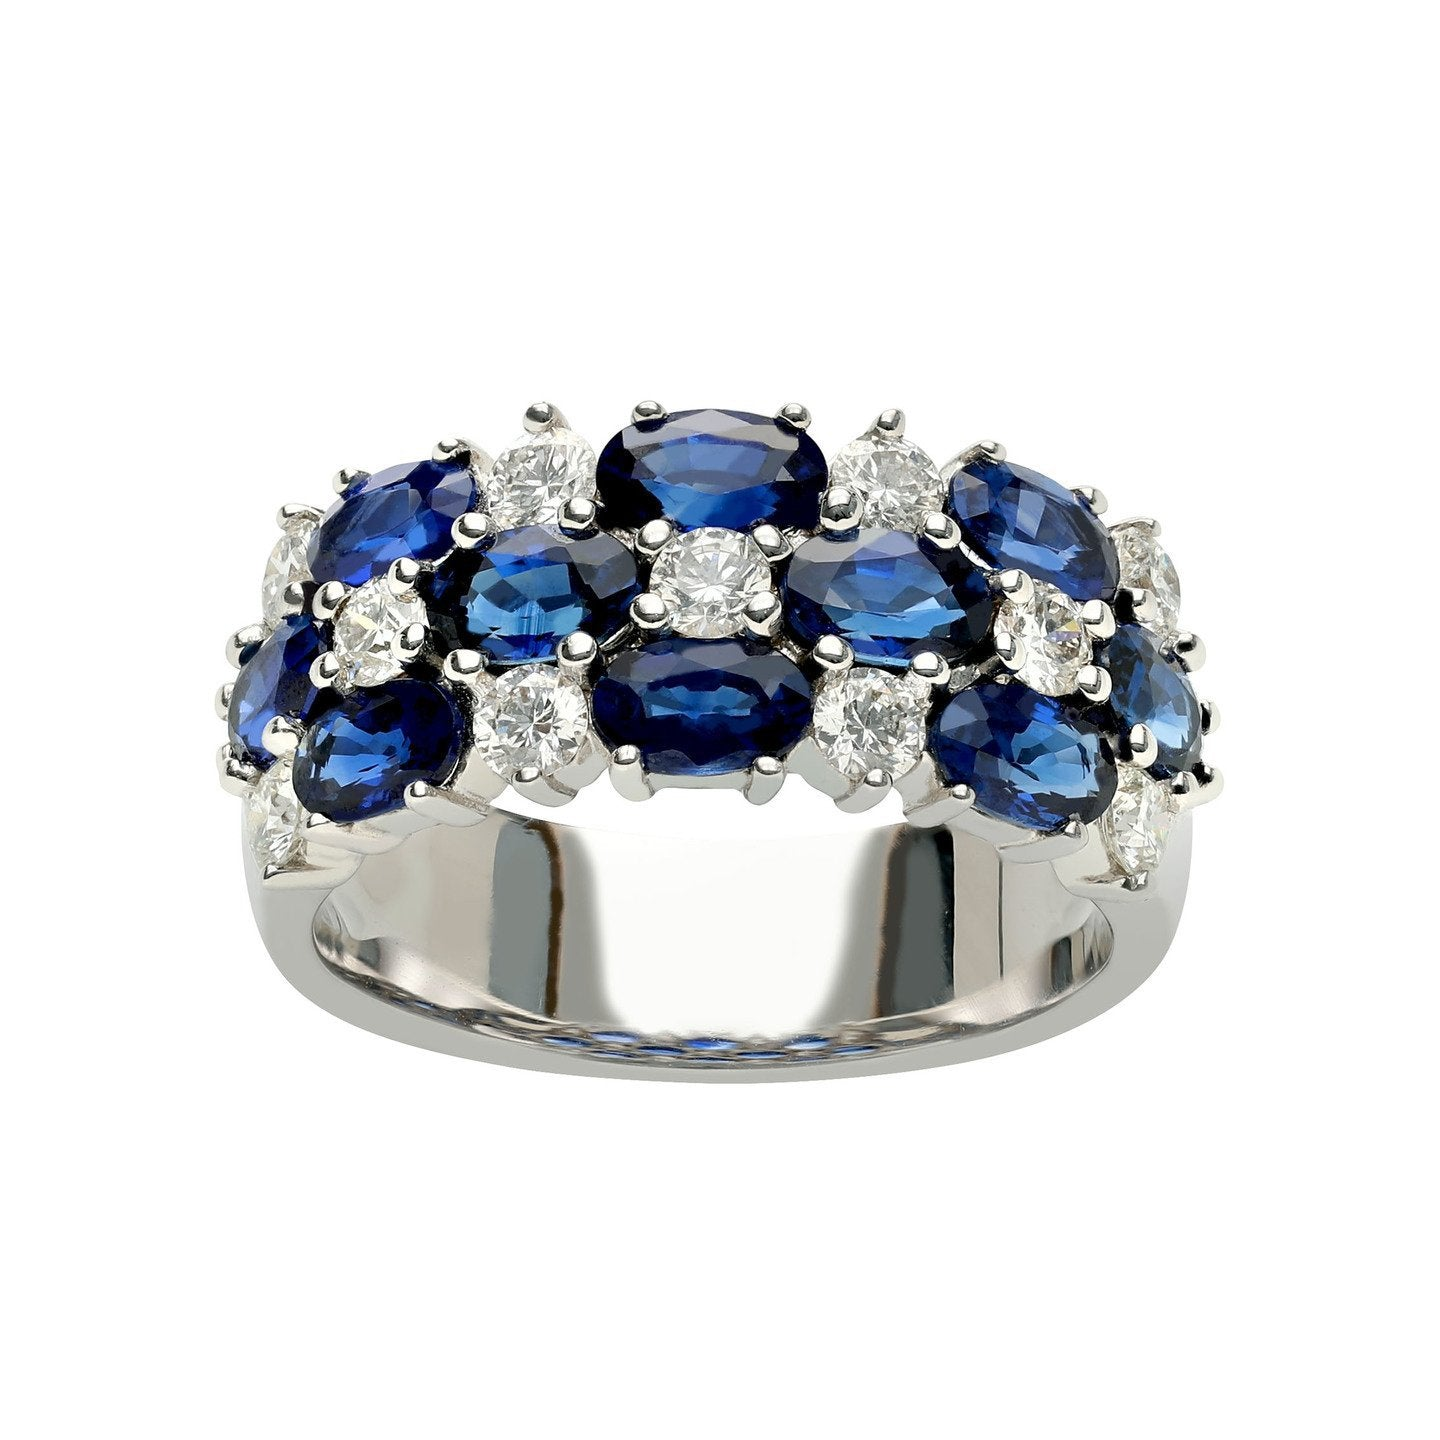 Sabel Collection 18K White Gold Sapphire and Diamond Ring